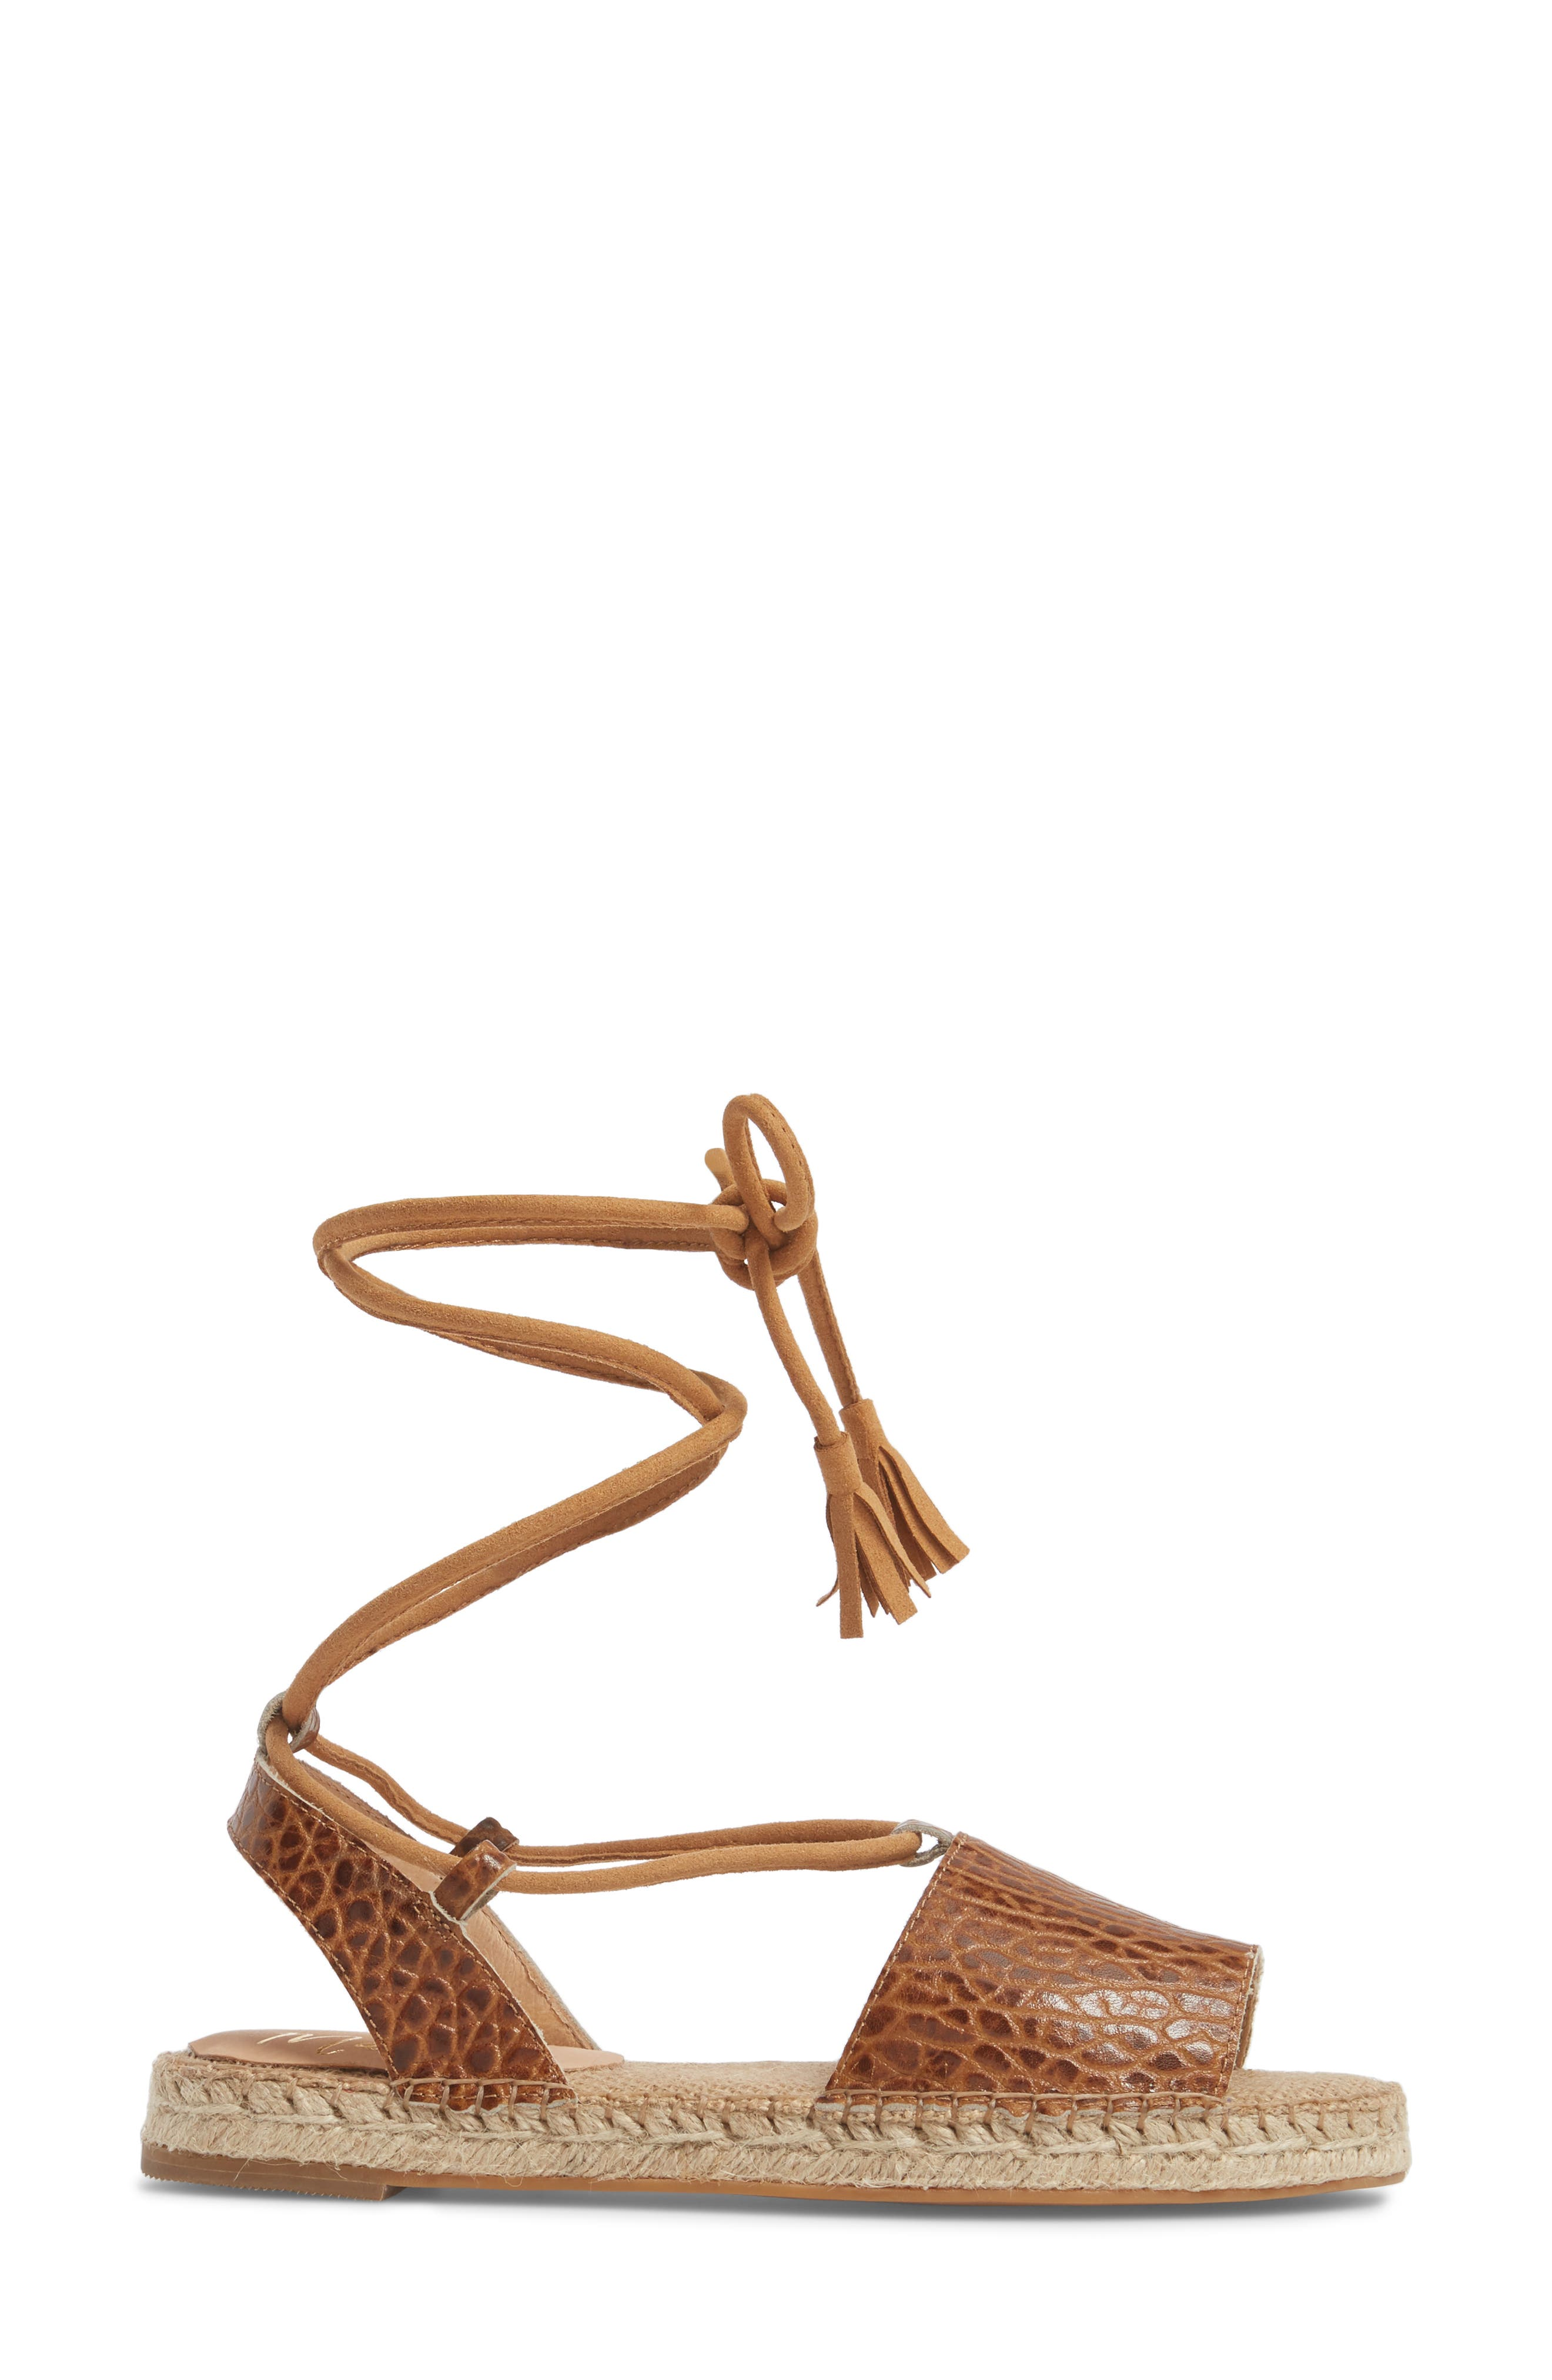 Amuse Society x Matisse La Vita Sandal,                             Alternate thumbnail 3, color,                             Tan Leather